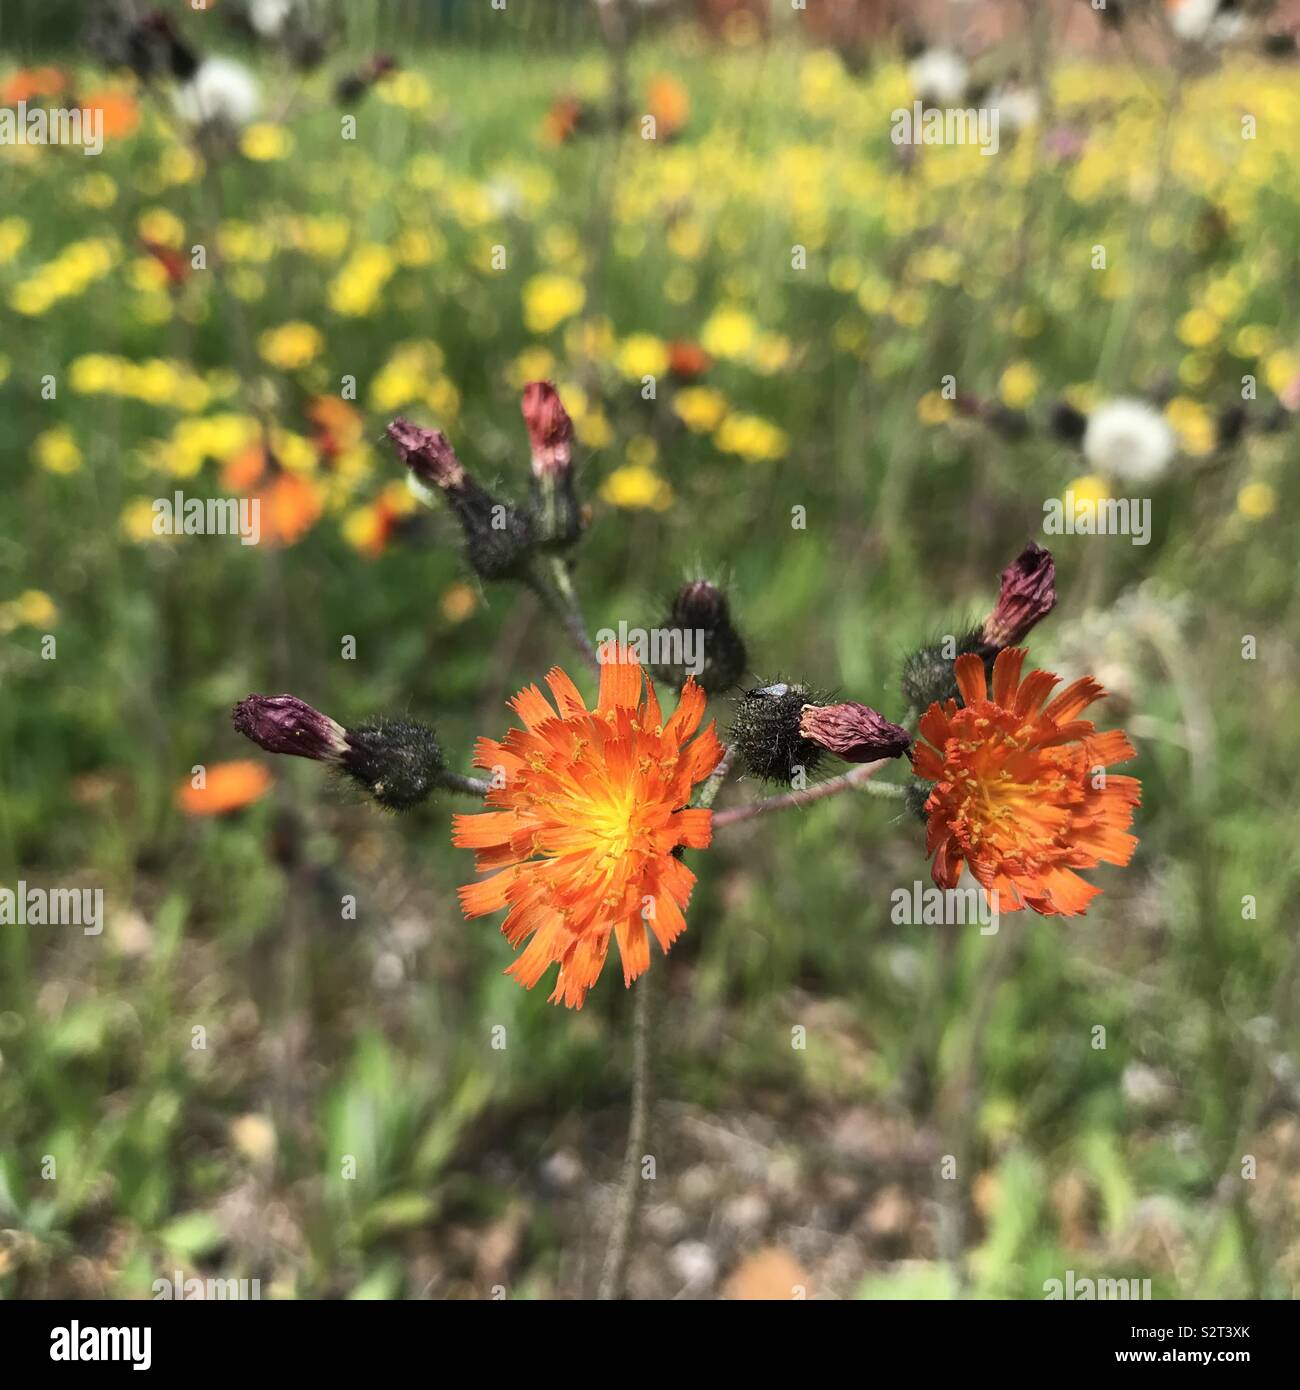 Wildflowers in the urban environment - Stock Image